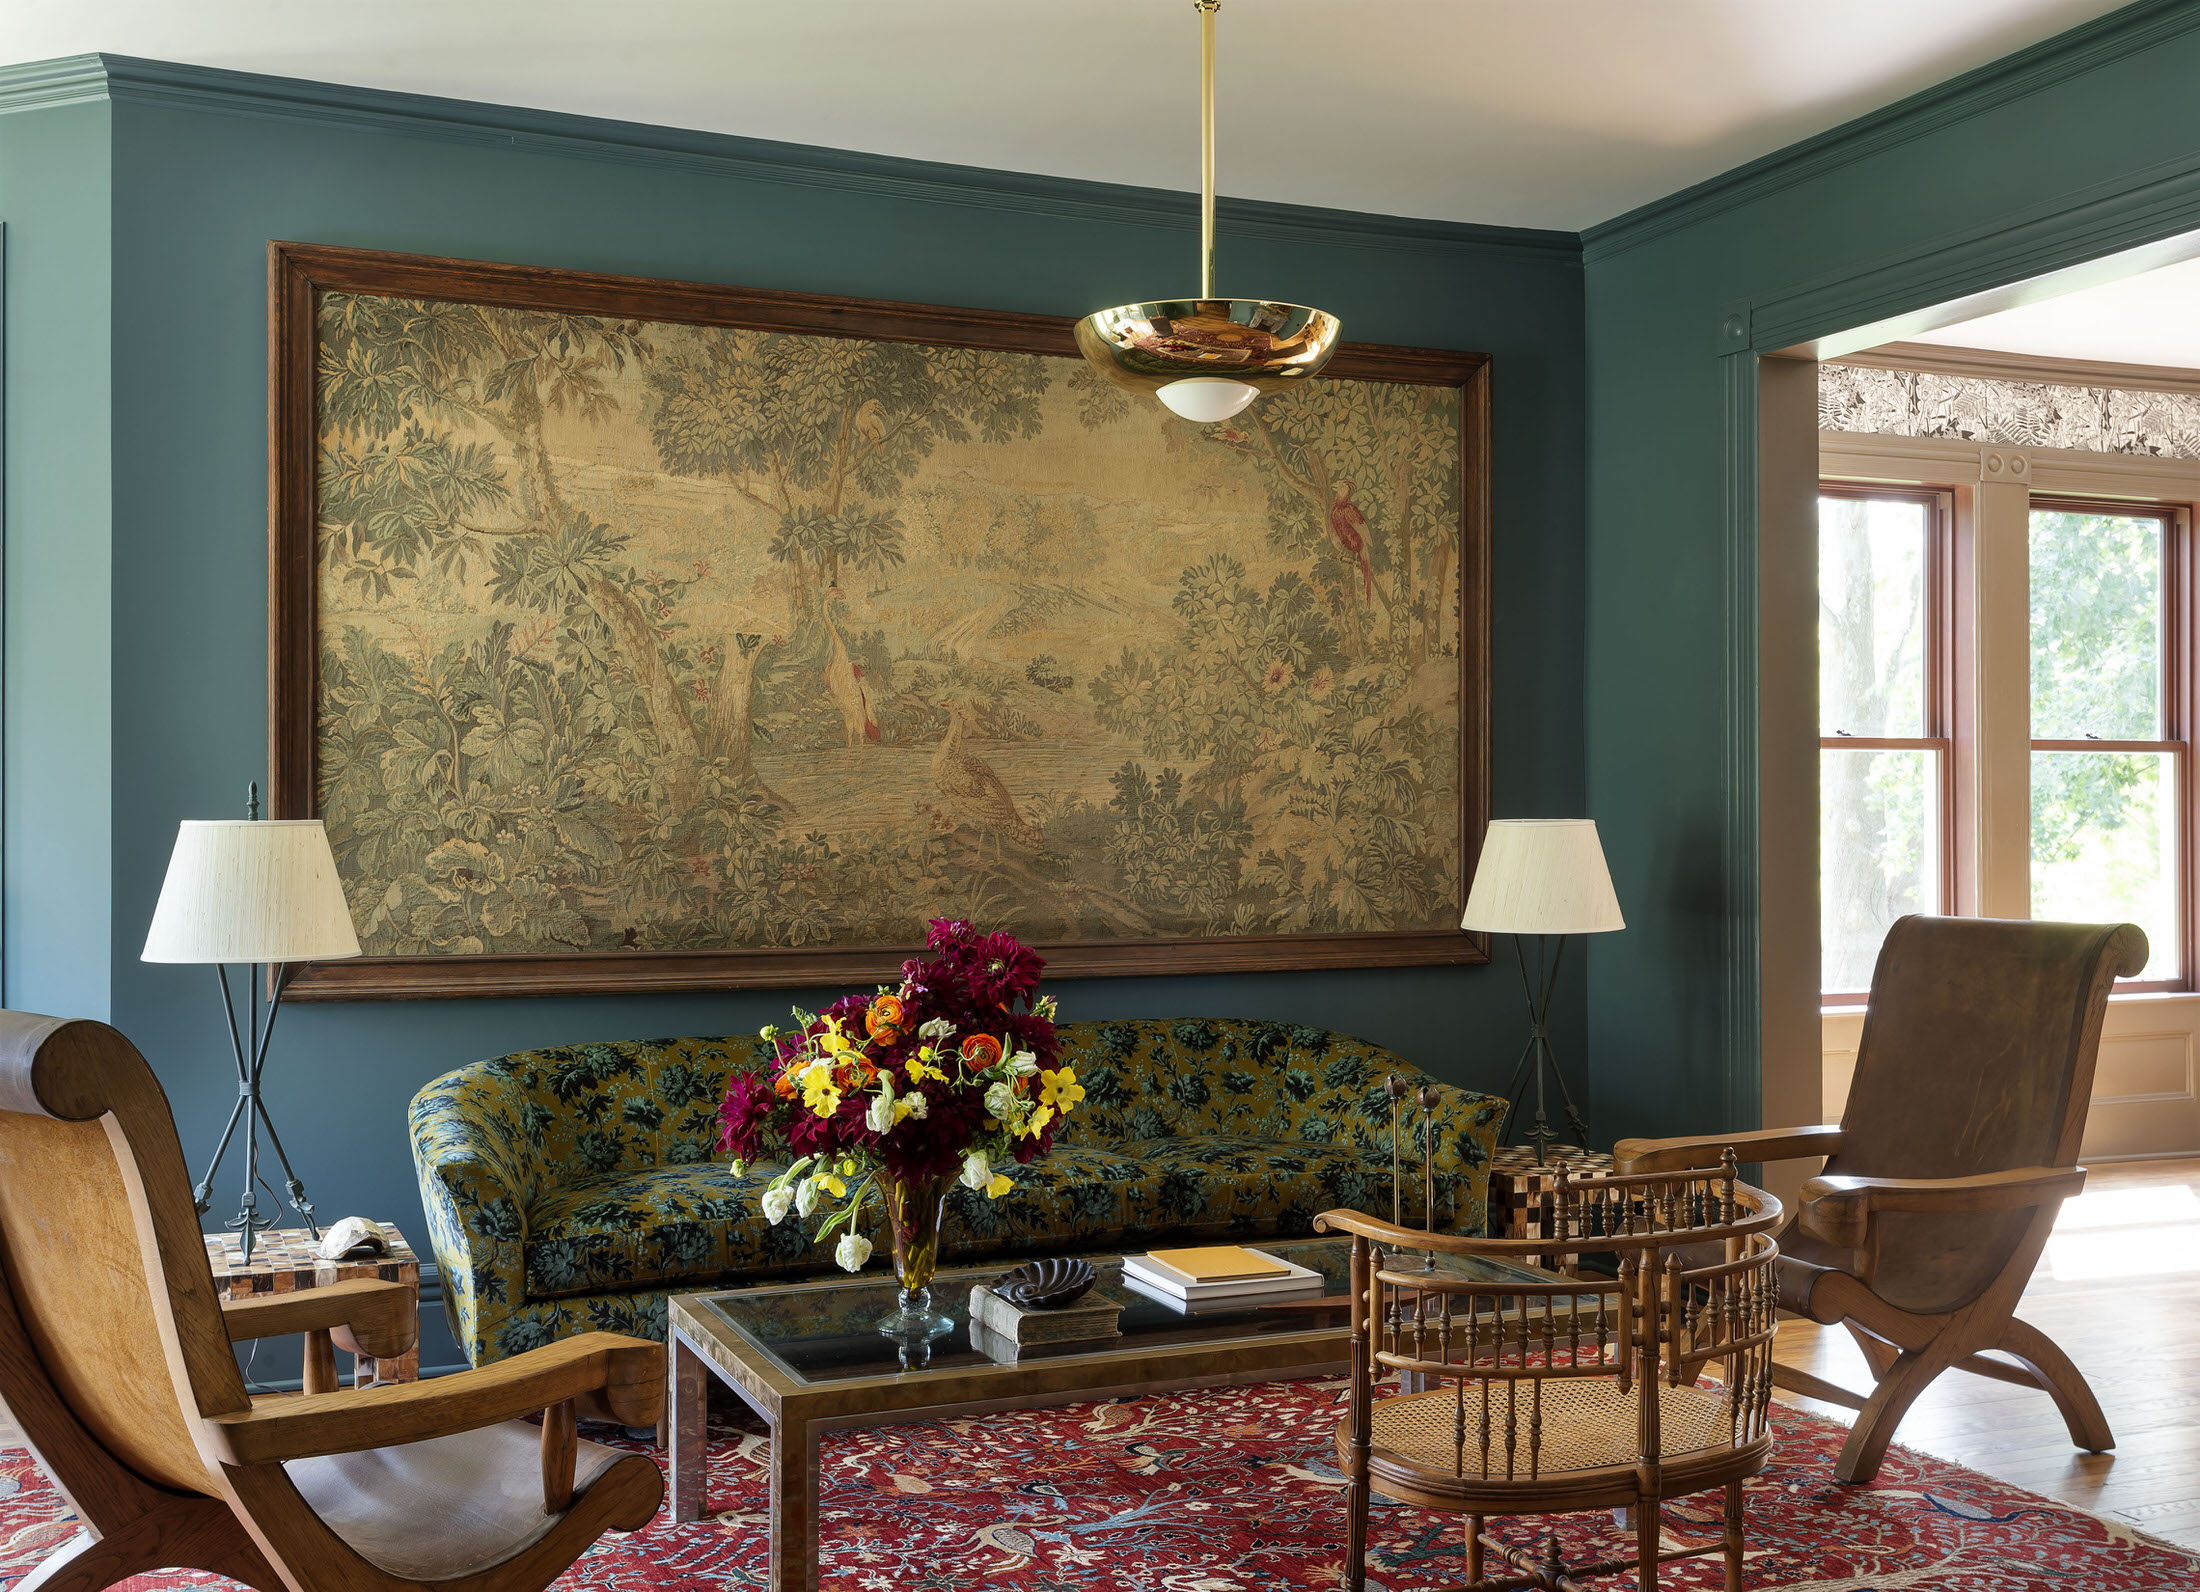 Workstead Twin Bridges House Residential Interiors Yellowtrace 04